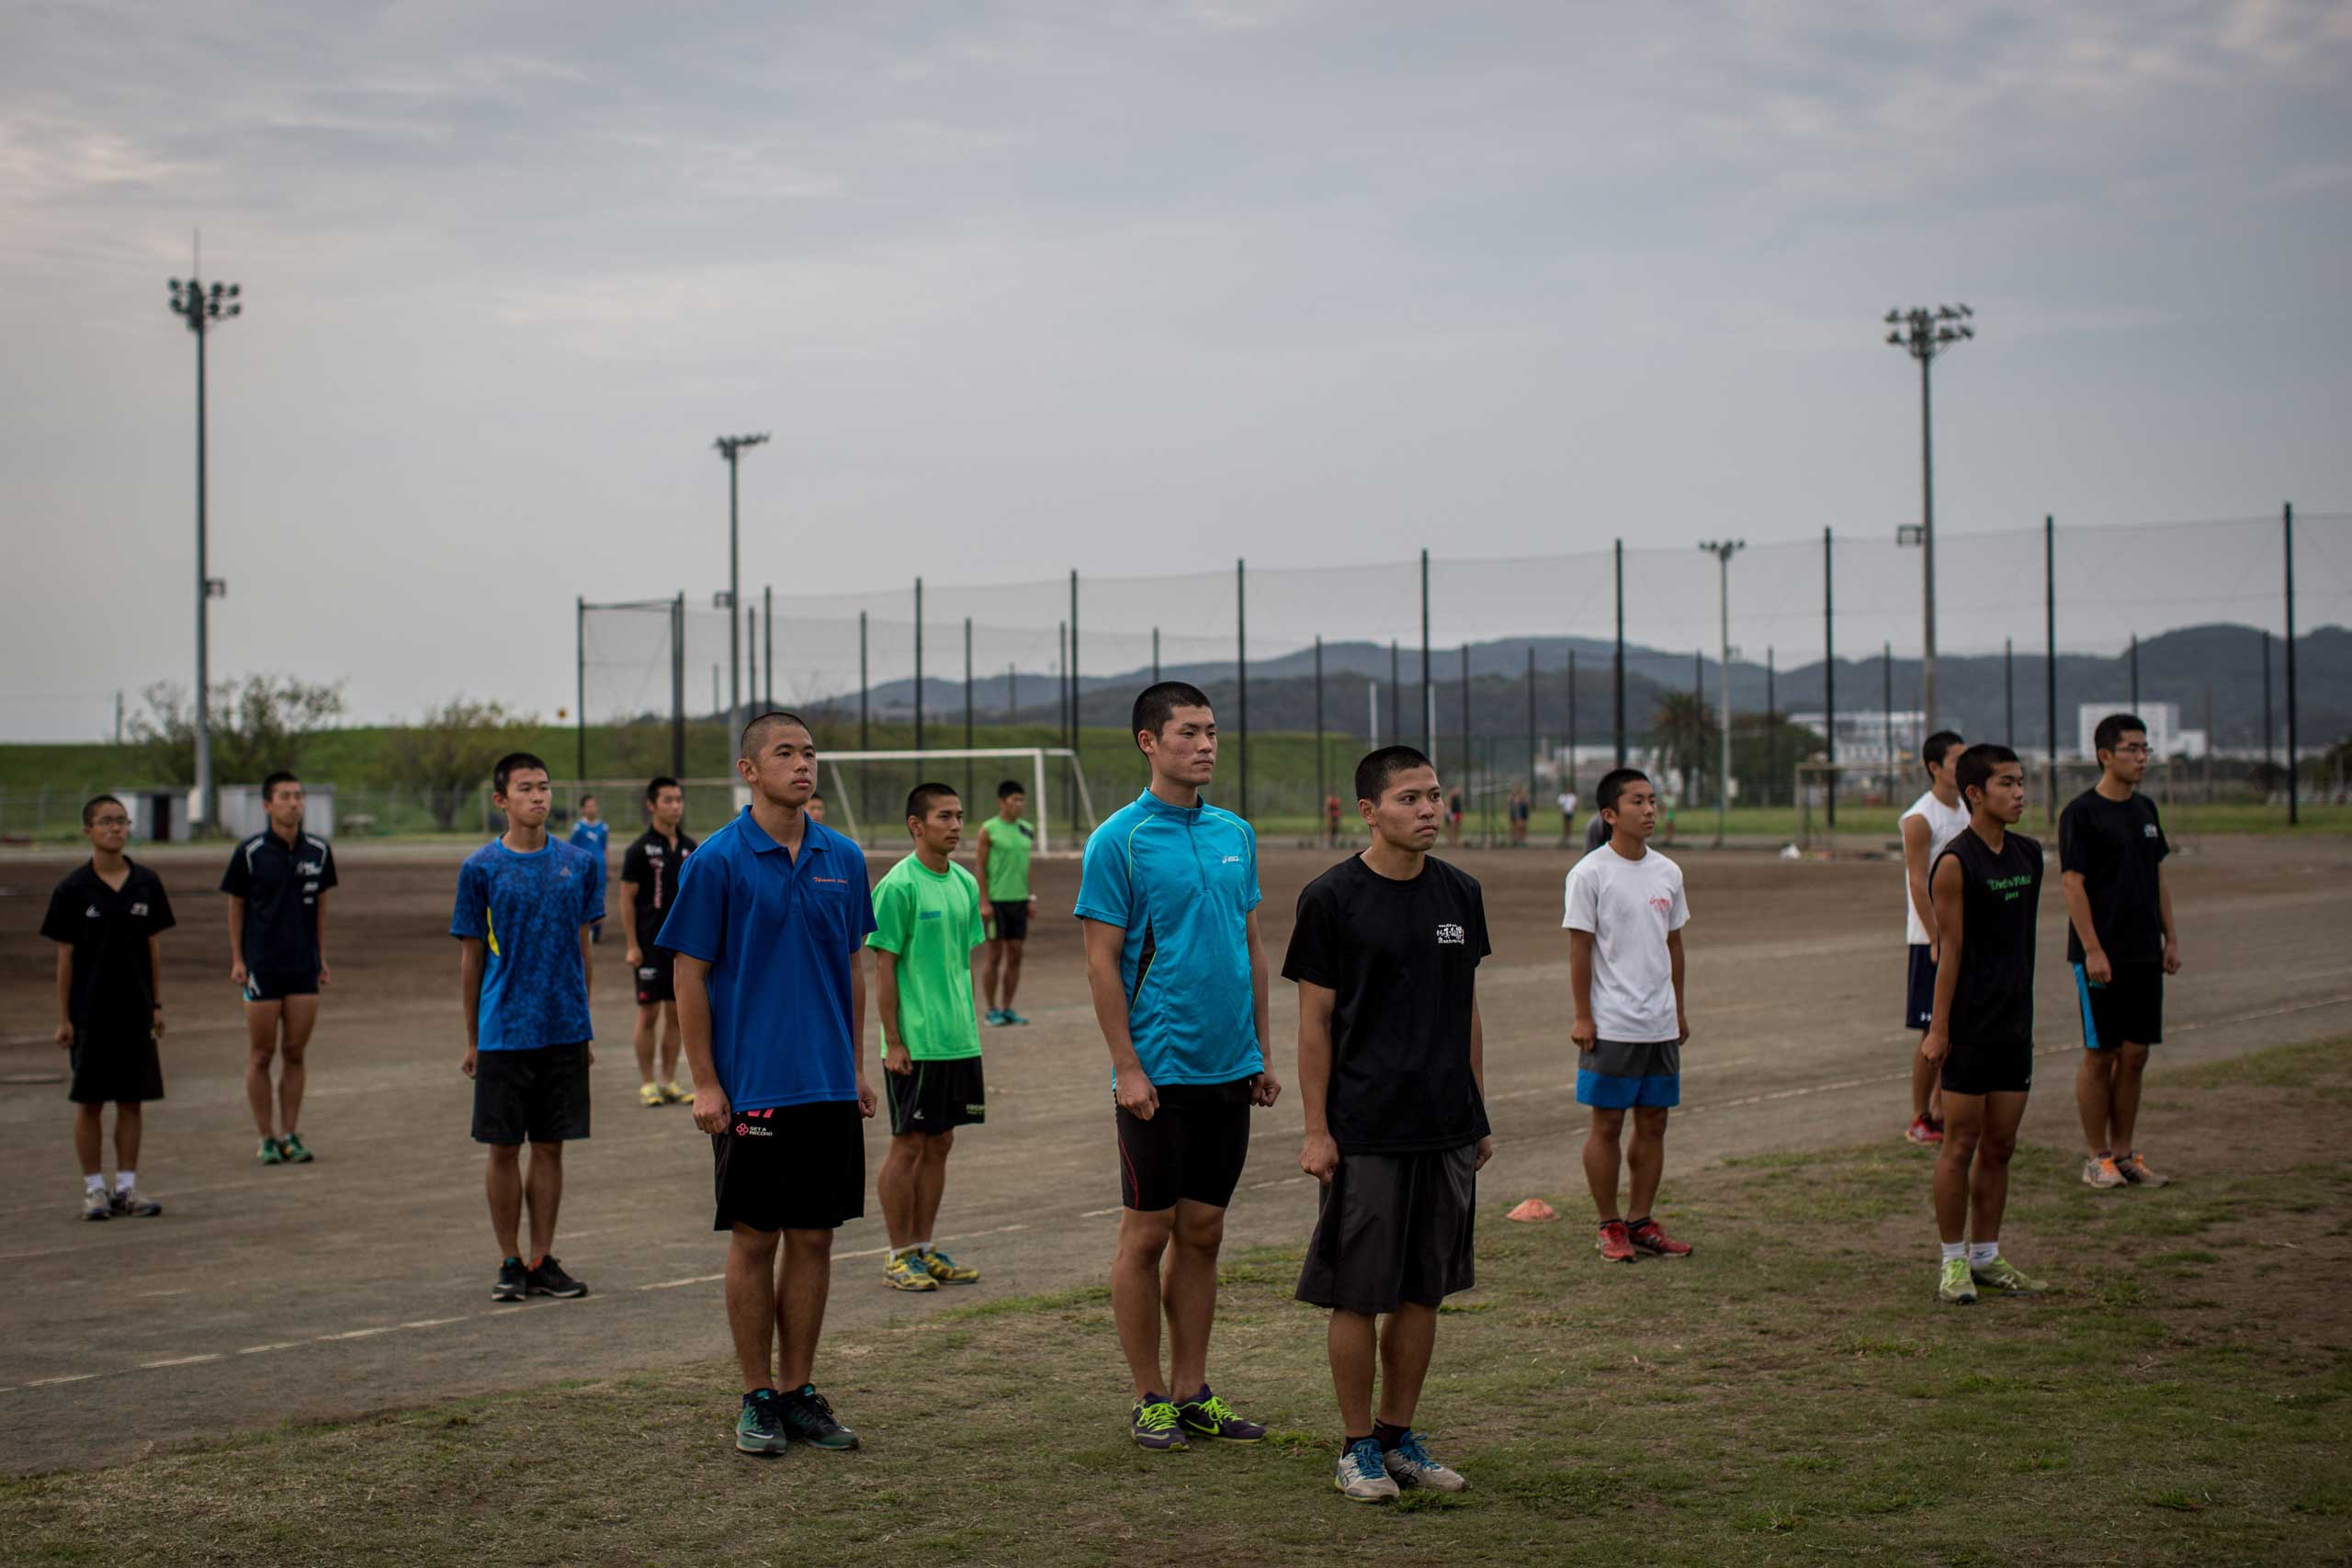 Students stand to attention while the schools song is played over loudspeakers during track and field training.